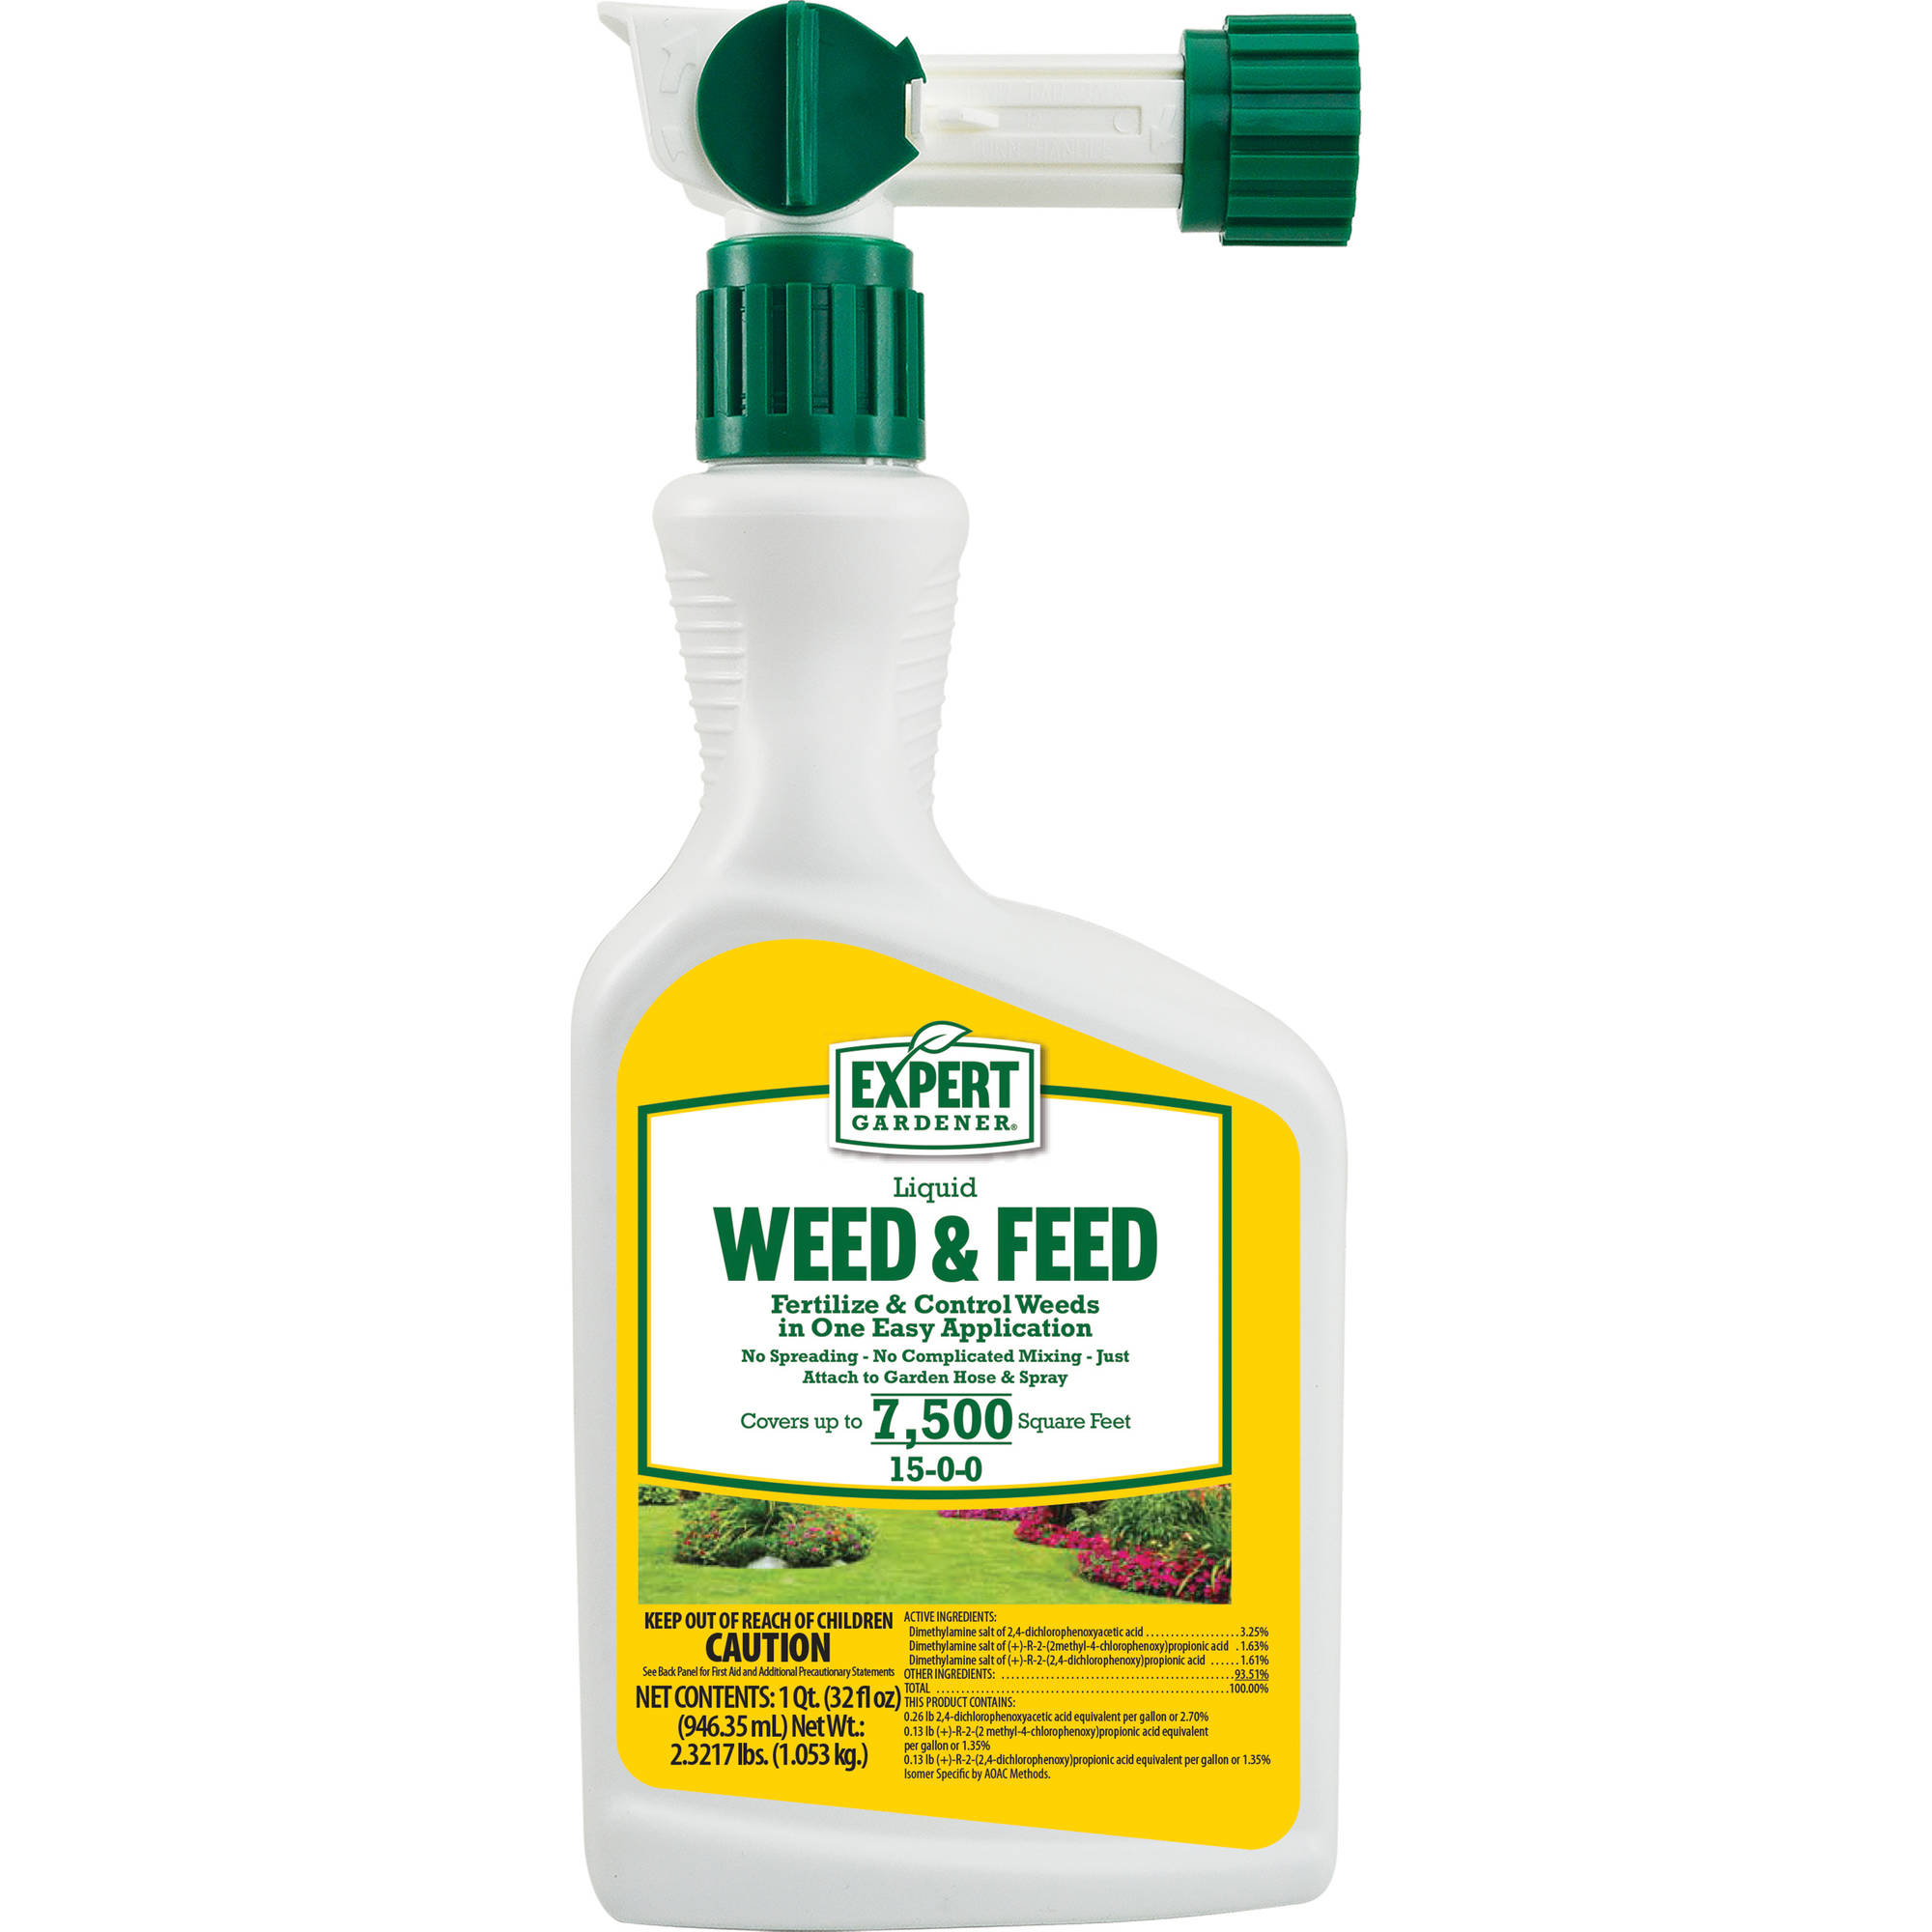 expert gardener weed and feed. Expert Gardener Weed And Feed 15-0-0 Liquid Hose-end Covers 7,500 R